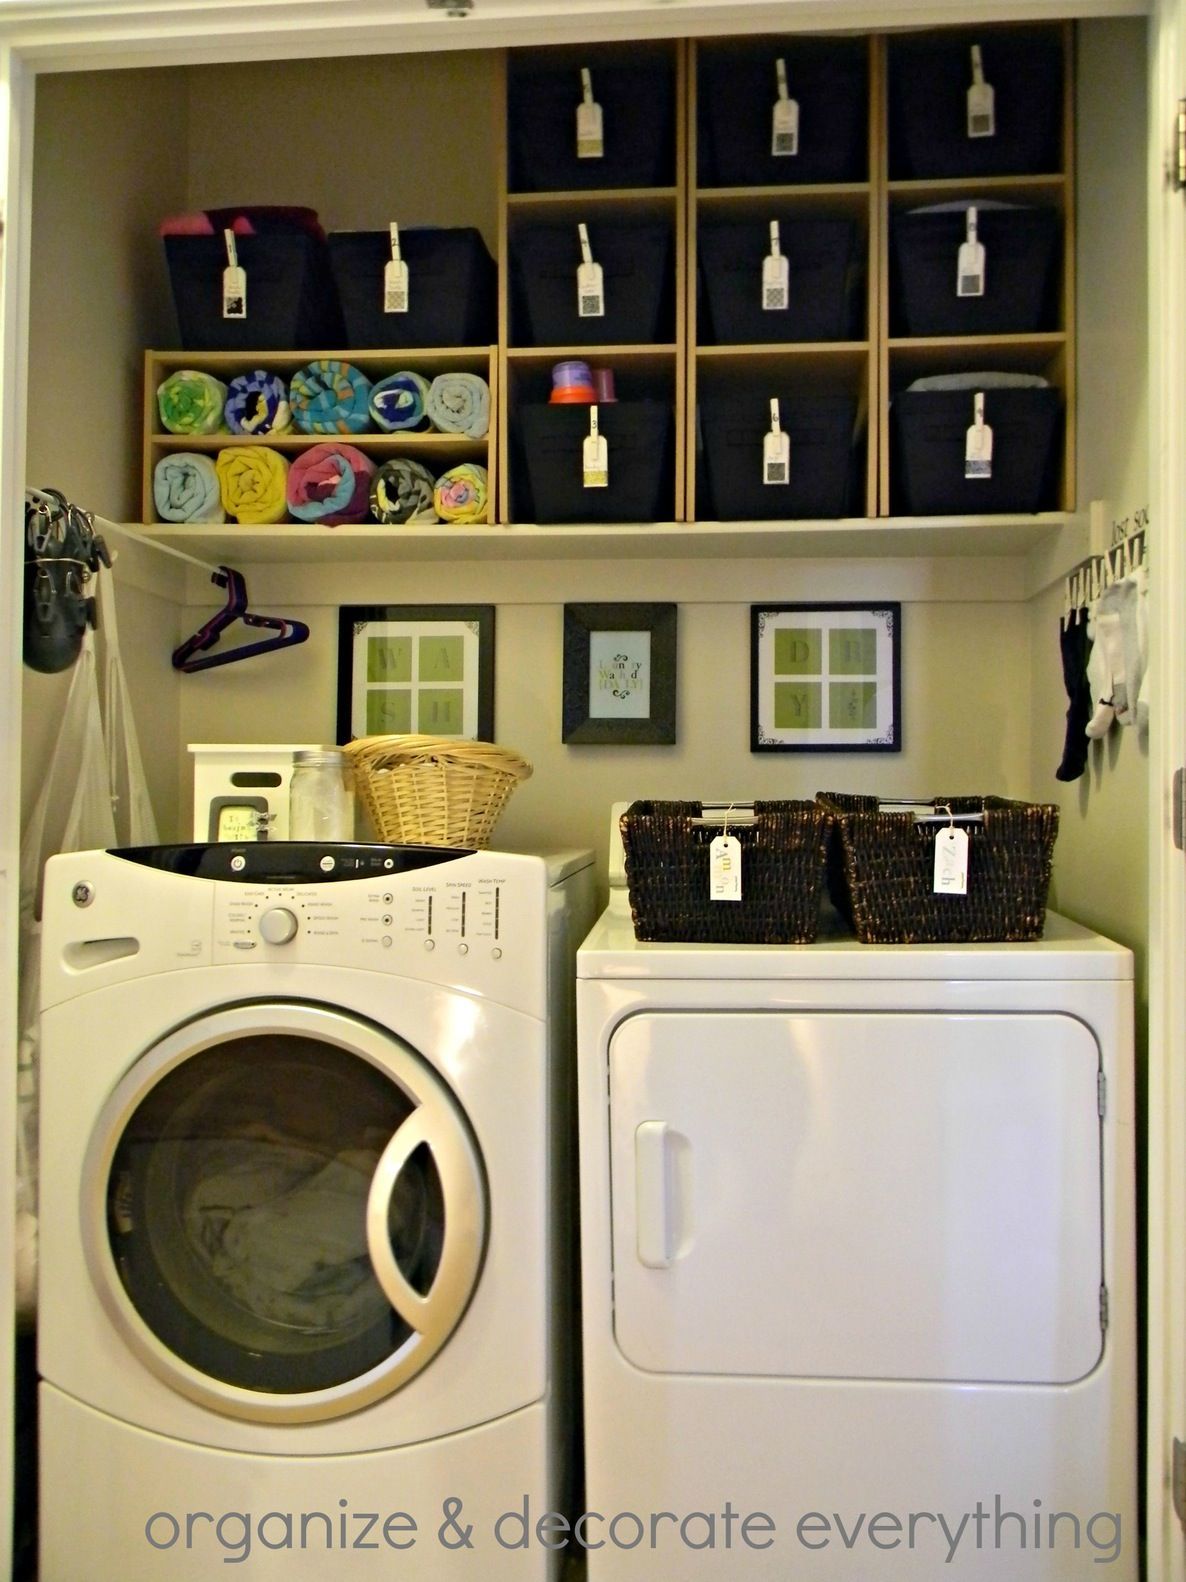 25 Small Laundry Room Ideas Interior Inspiration Marvelous Floating Laundry Room Wall Cabinets With Wood Materials Over Laundry Machine As Well As Rattan Basket As Decorate In Small Laundry Room Ideas. laundry room cabinets ideas. laundry room ideas. laundry room storage. laundry room cabinets ikea.